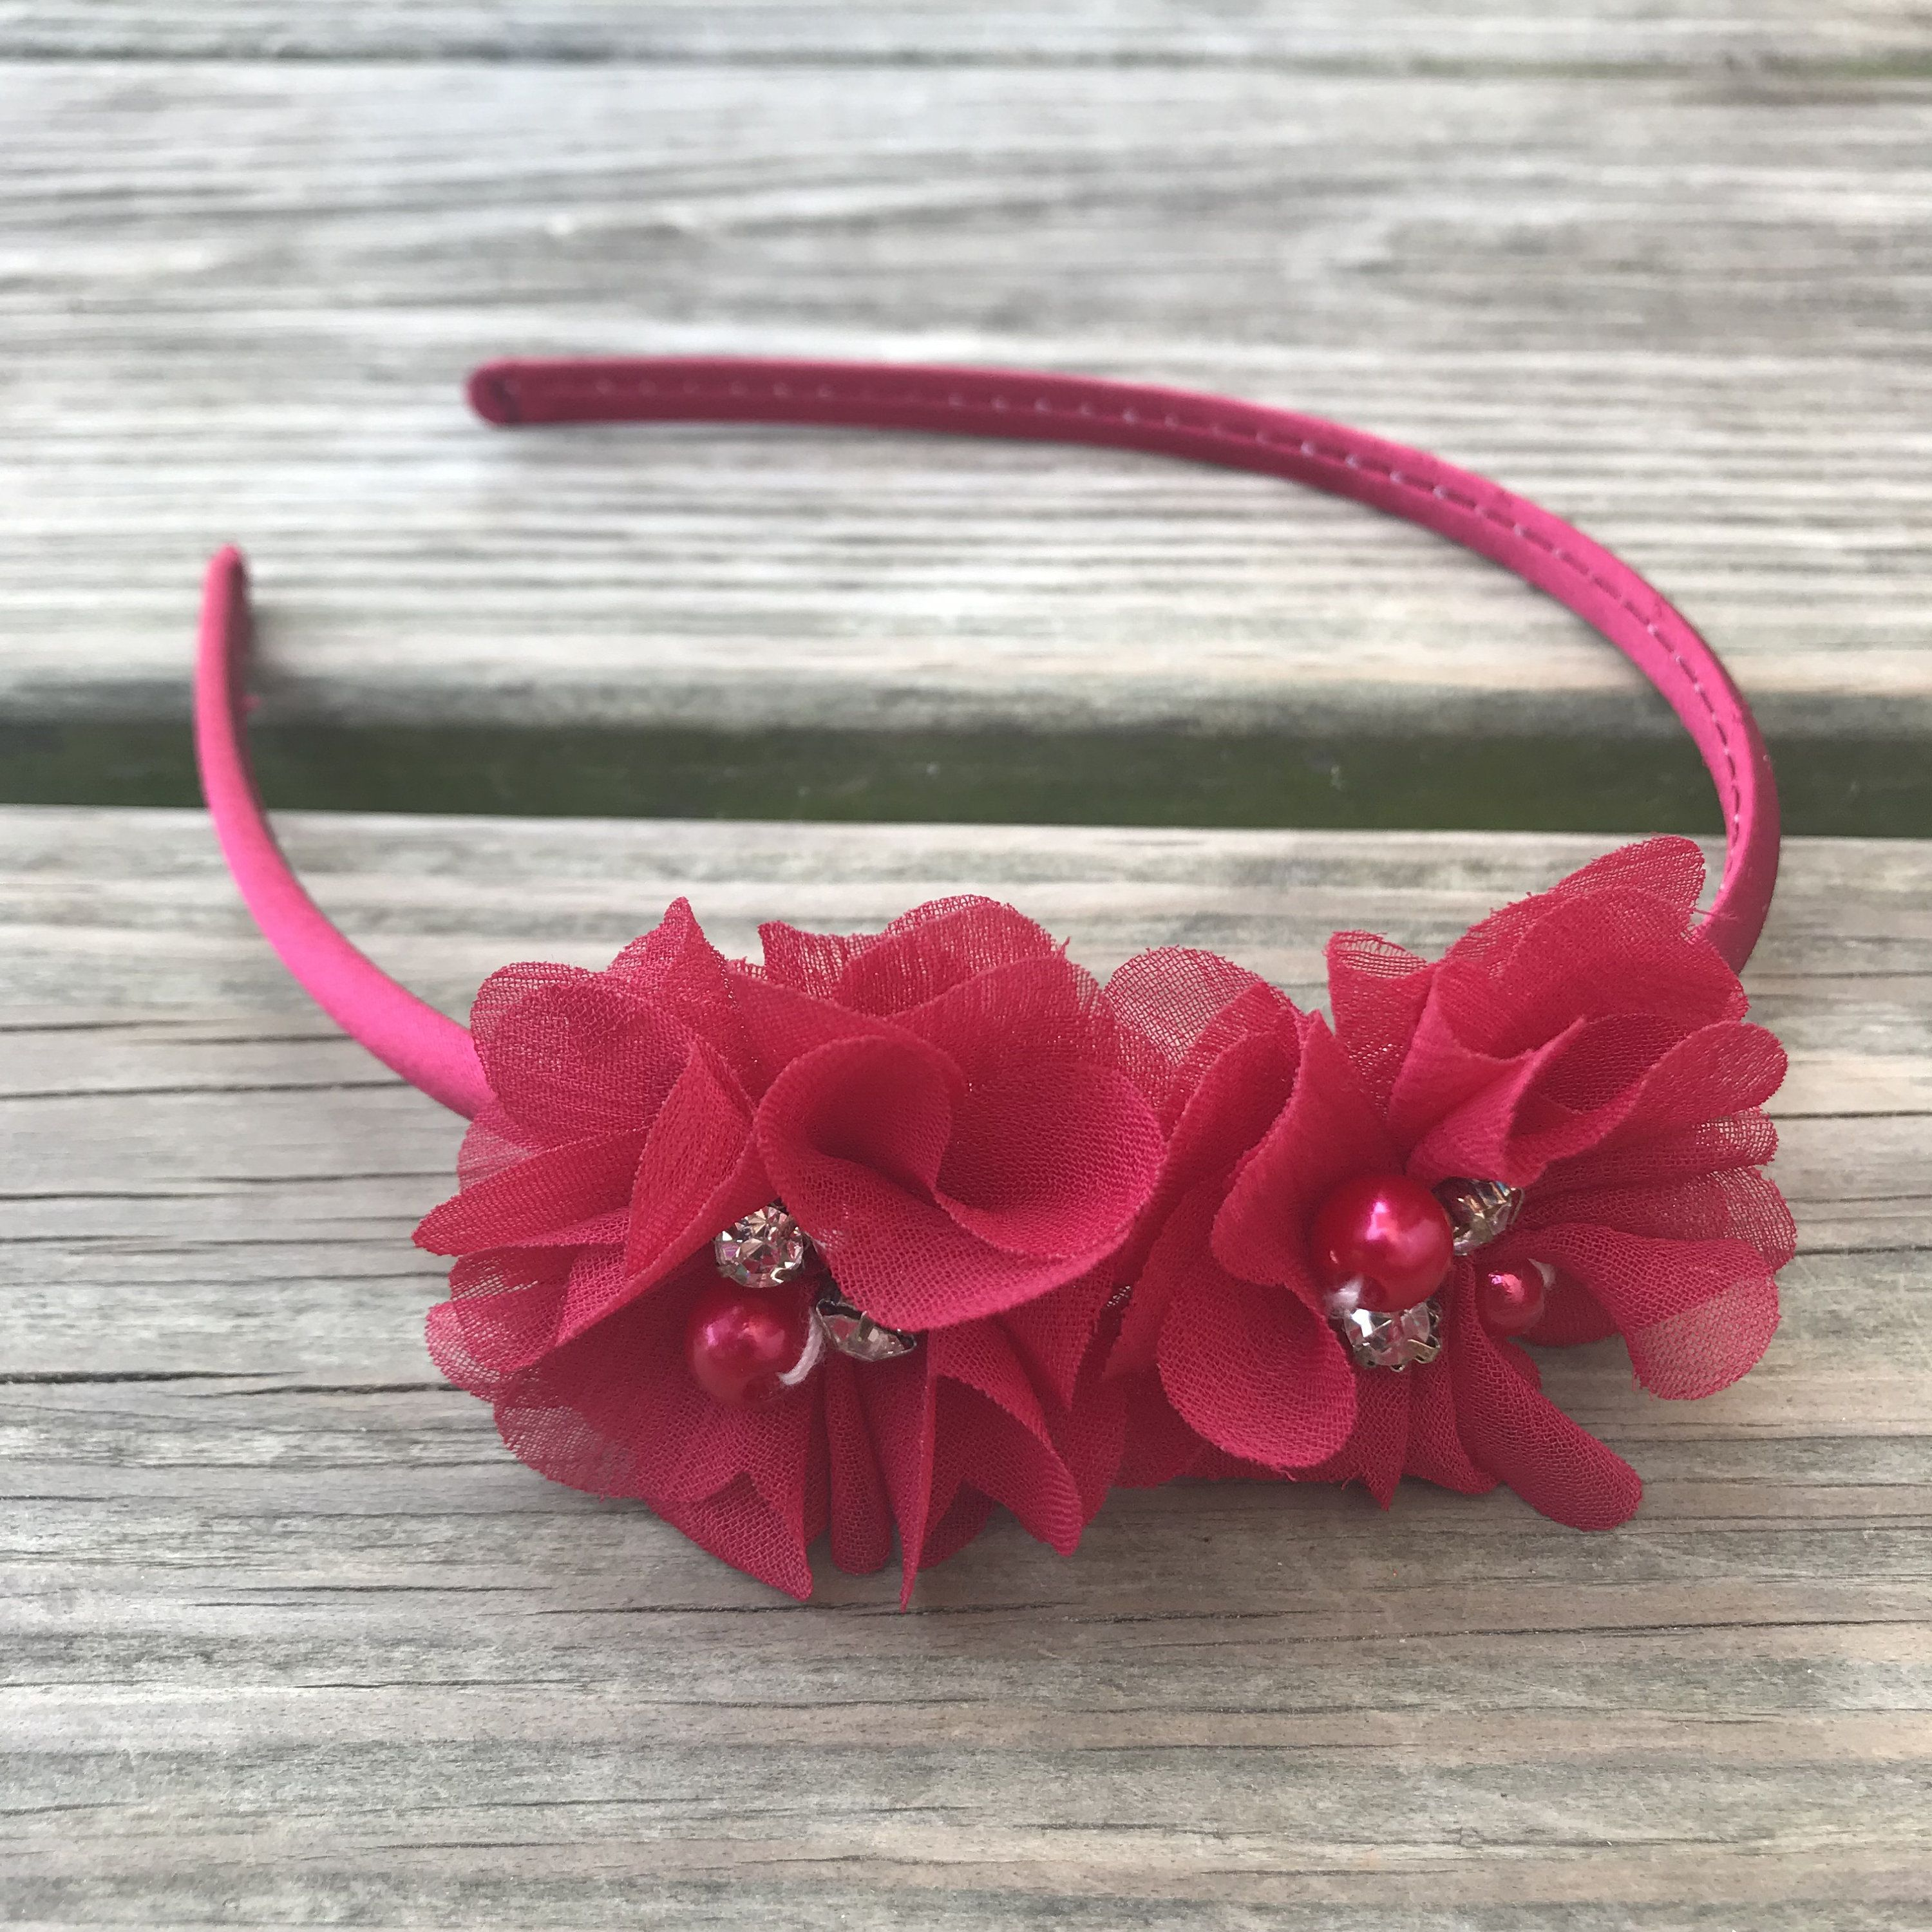 Red Flower Girl Headband - Red Wedding Headband - Red Headband - Toddler  Headband - Christmas headband - Hard headband - Hard band - Red Bow by ... d42670b7ed5